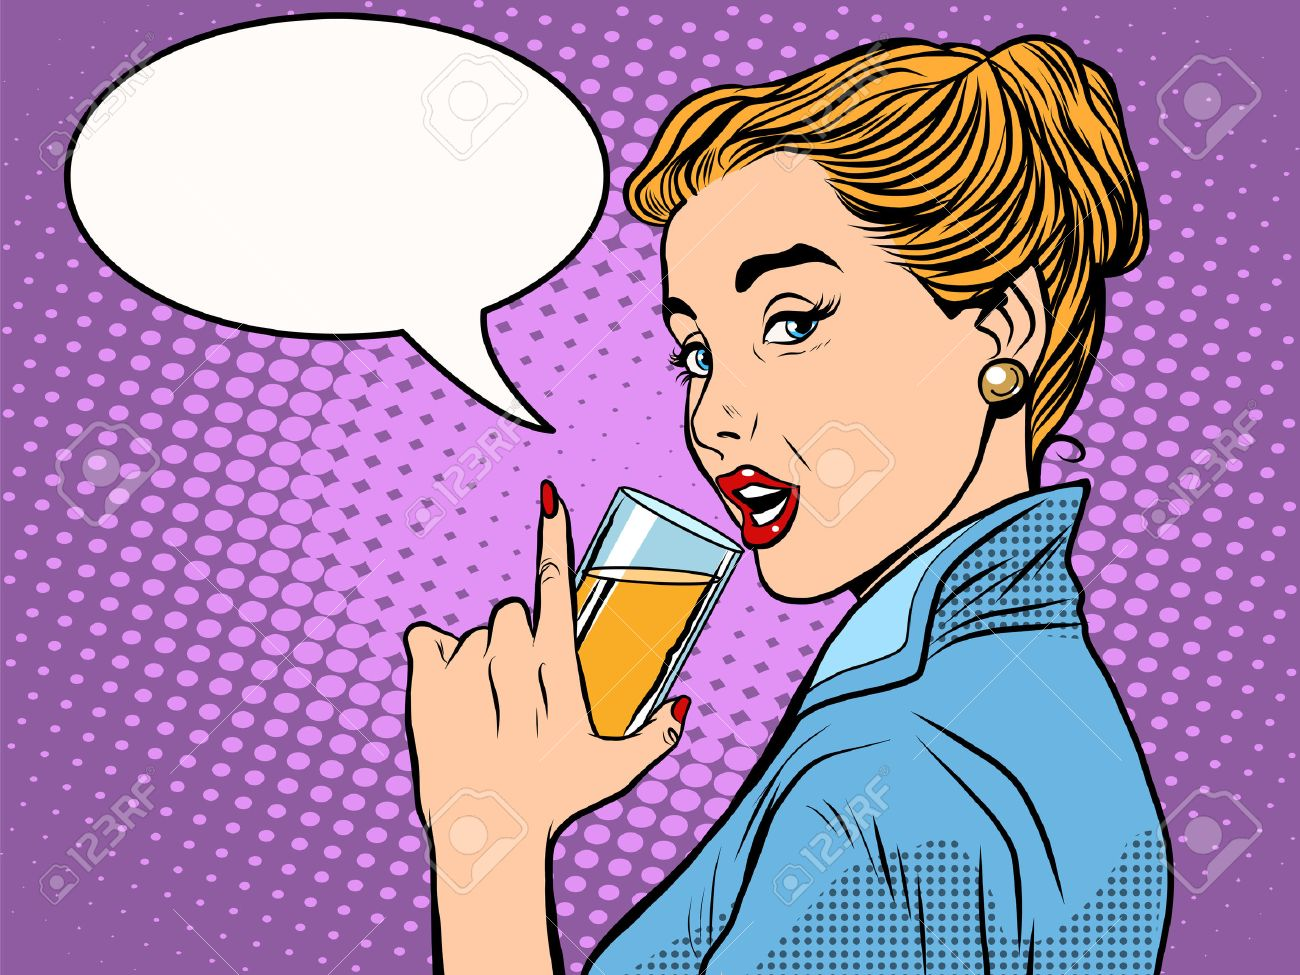 girl alcoholic drink pop art retro style. A glass of wine or champagne. Party and celebration - 51904044